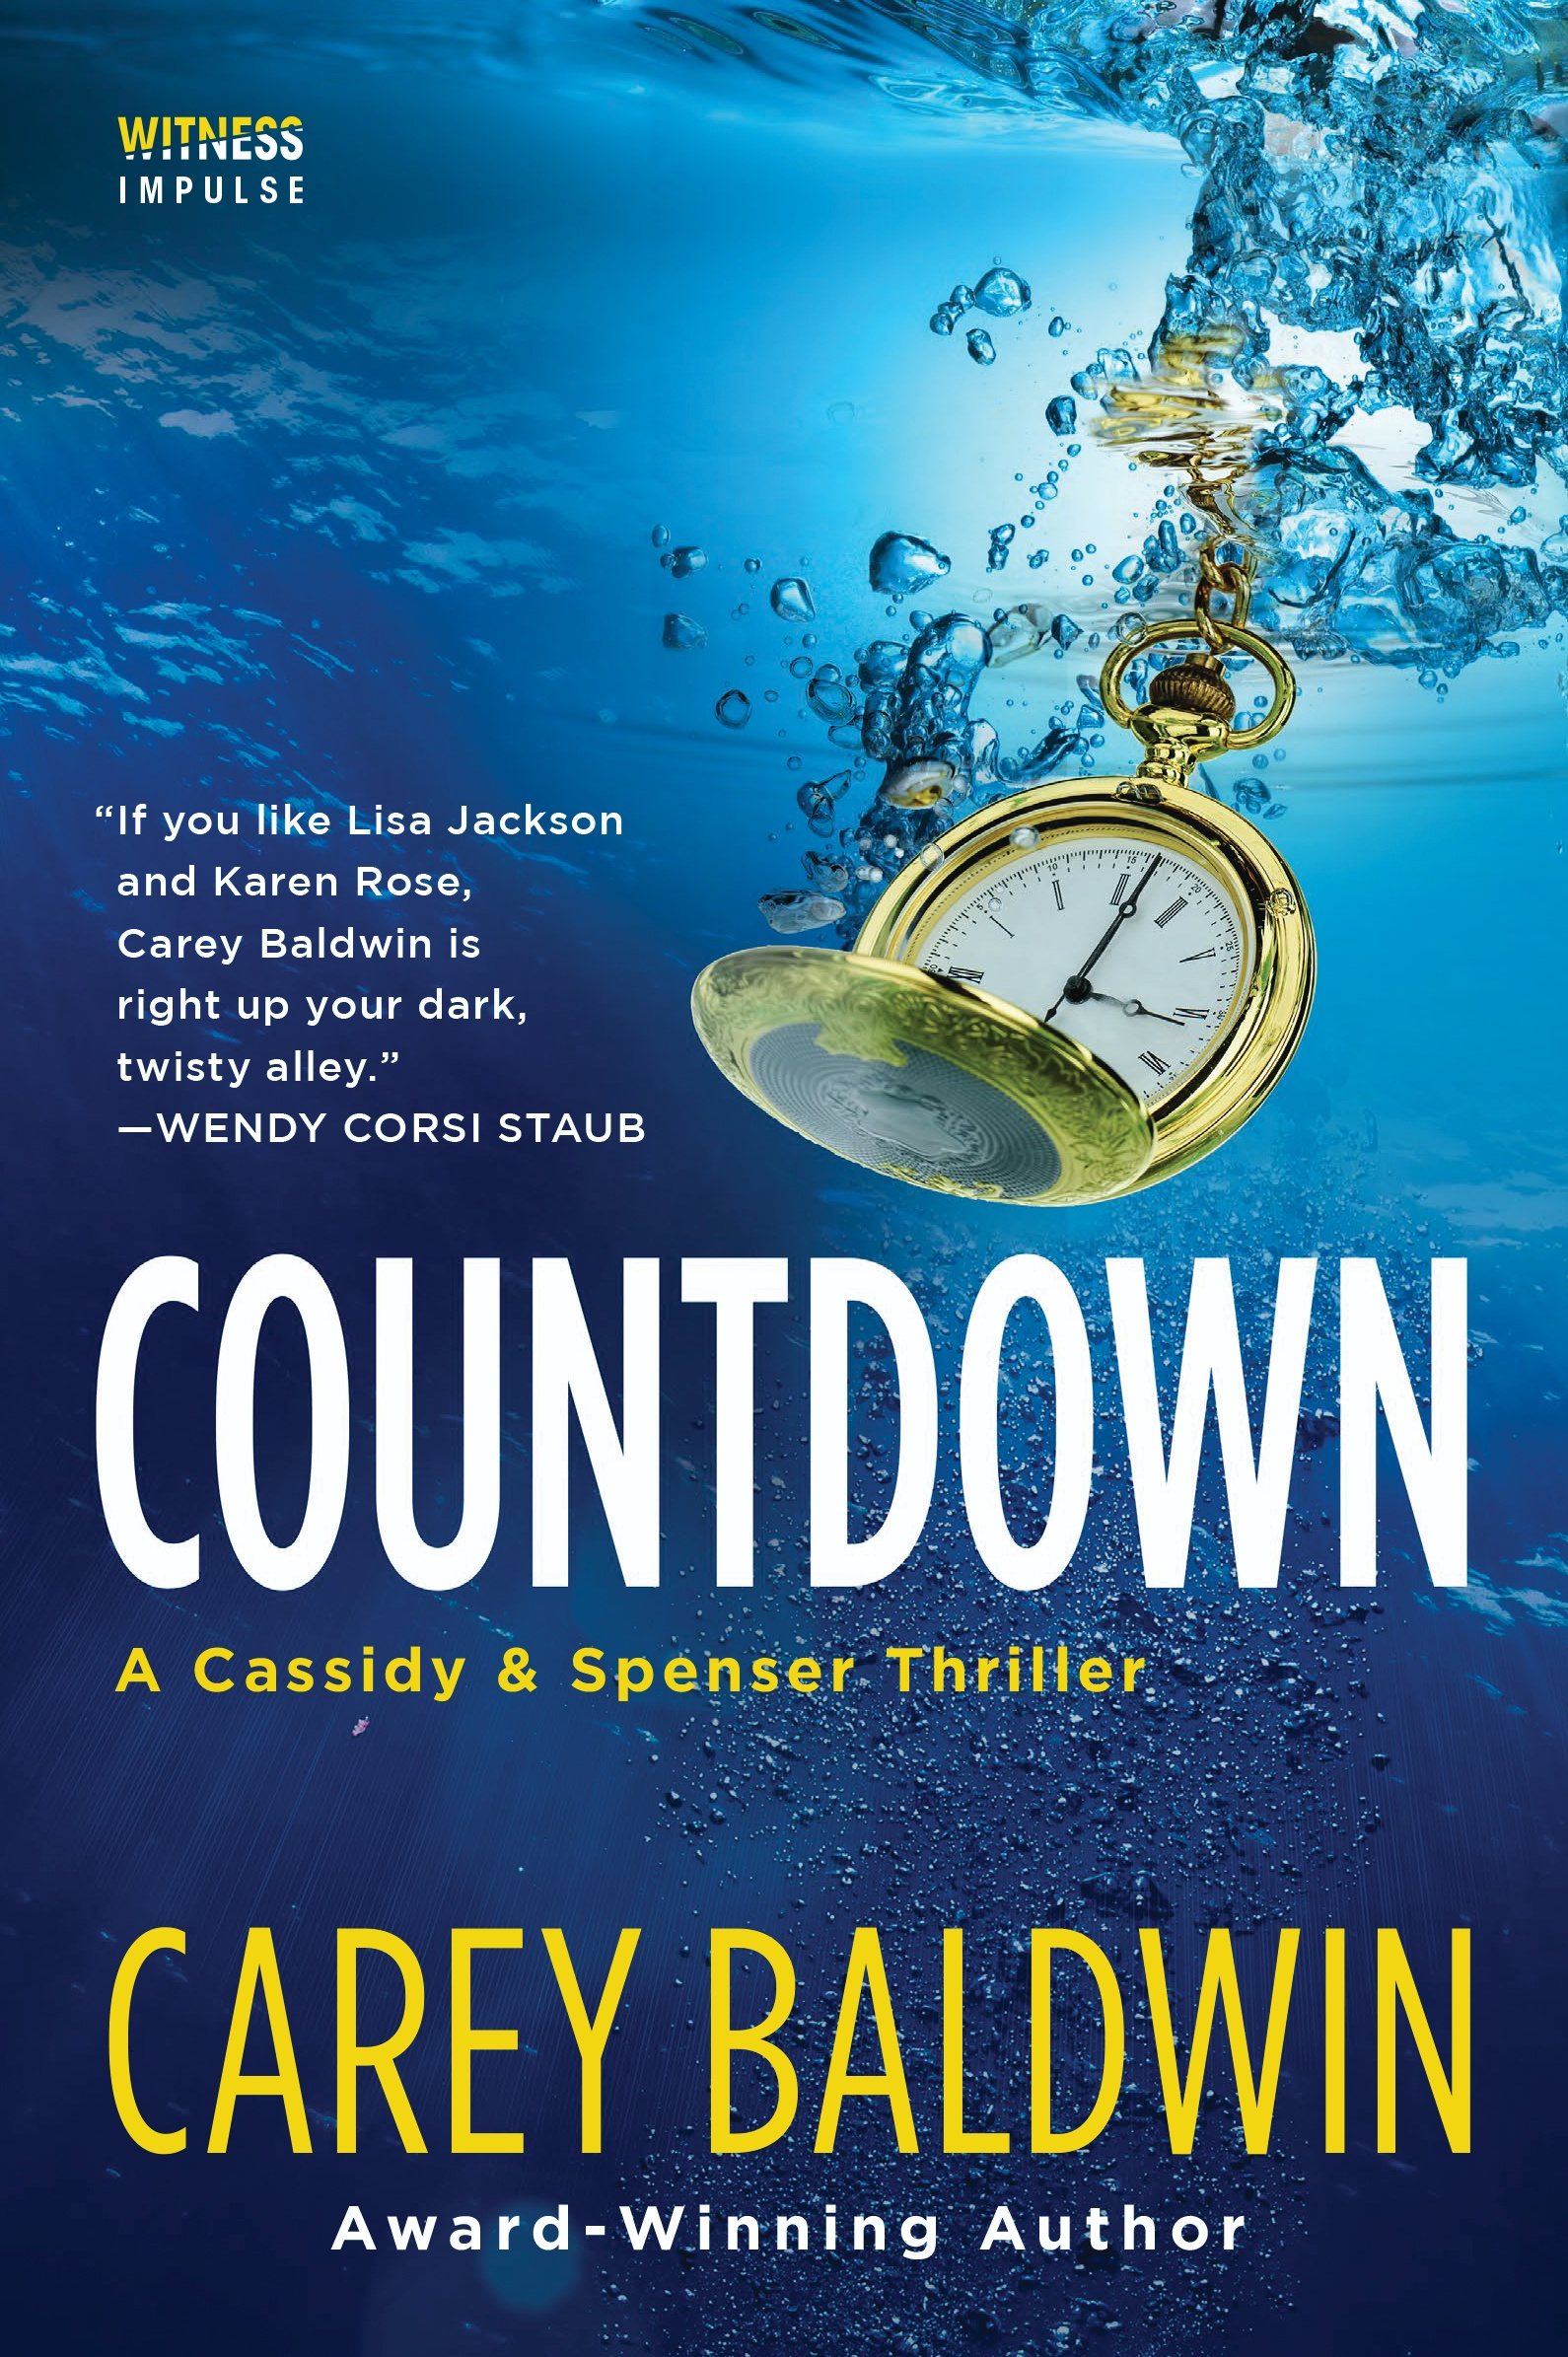 Countdown by Carey Baldwin – Excerpt and Giveaway